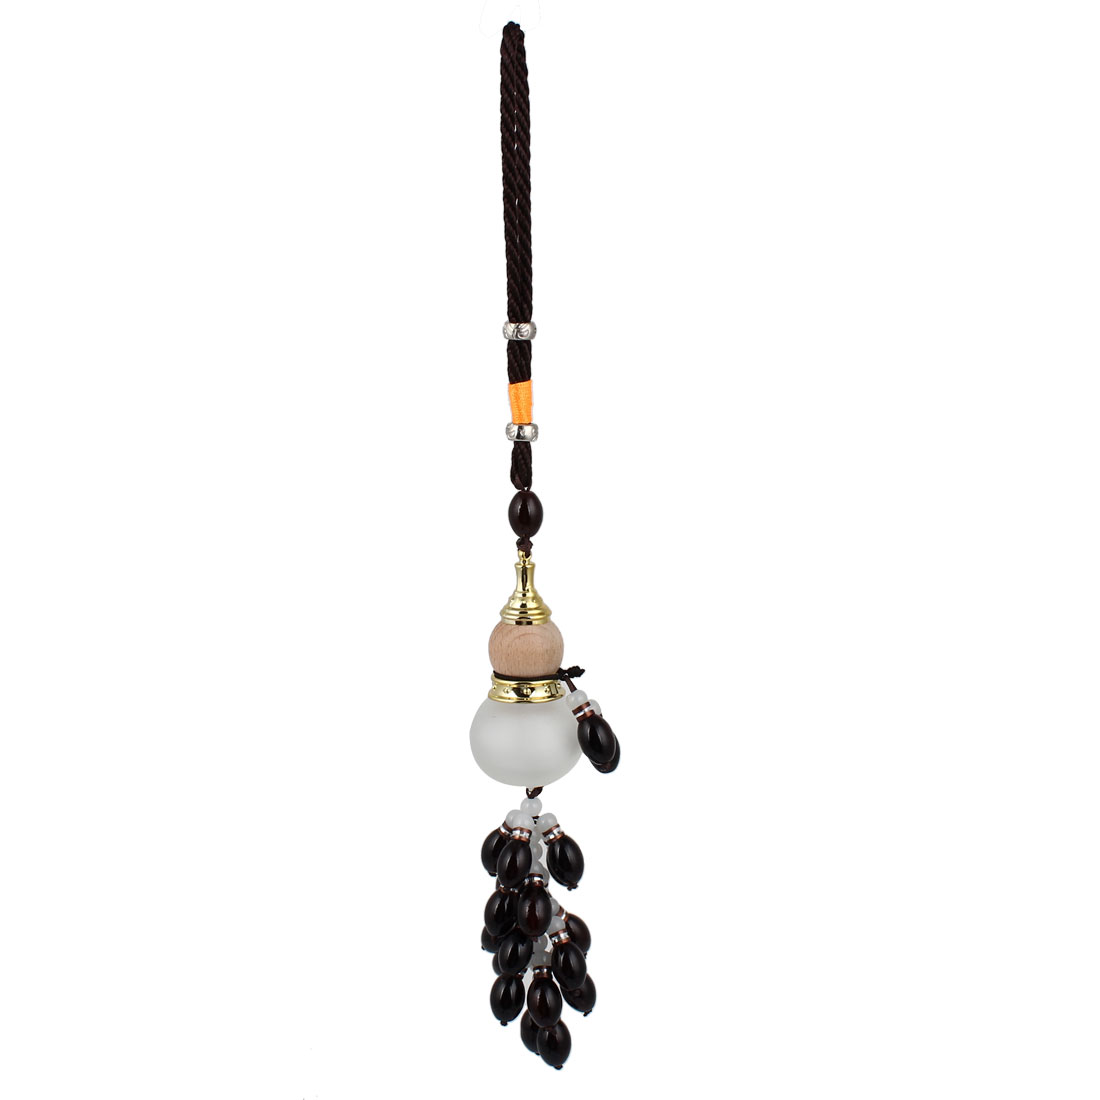 Auto Car Nylon String Wooden Glass Calabash Pendant Hanging Ornament Black